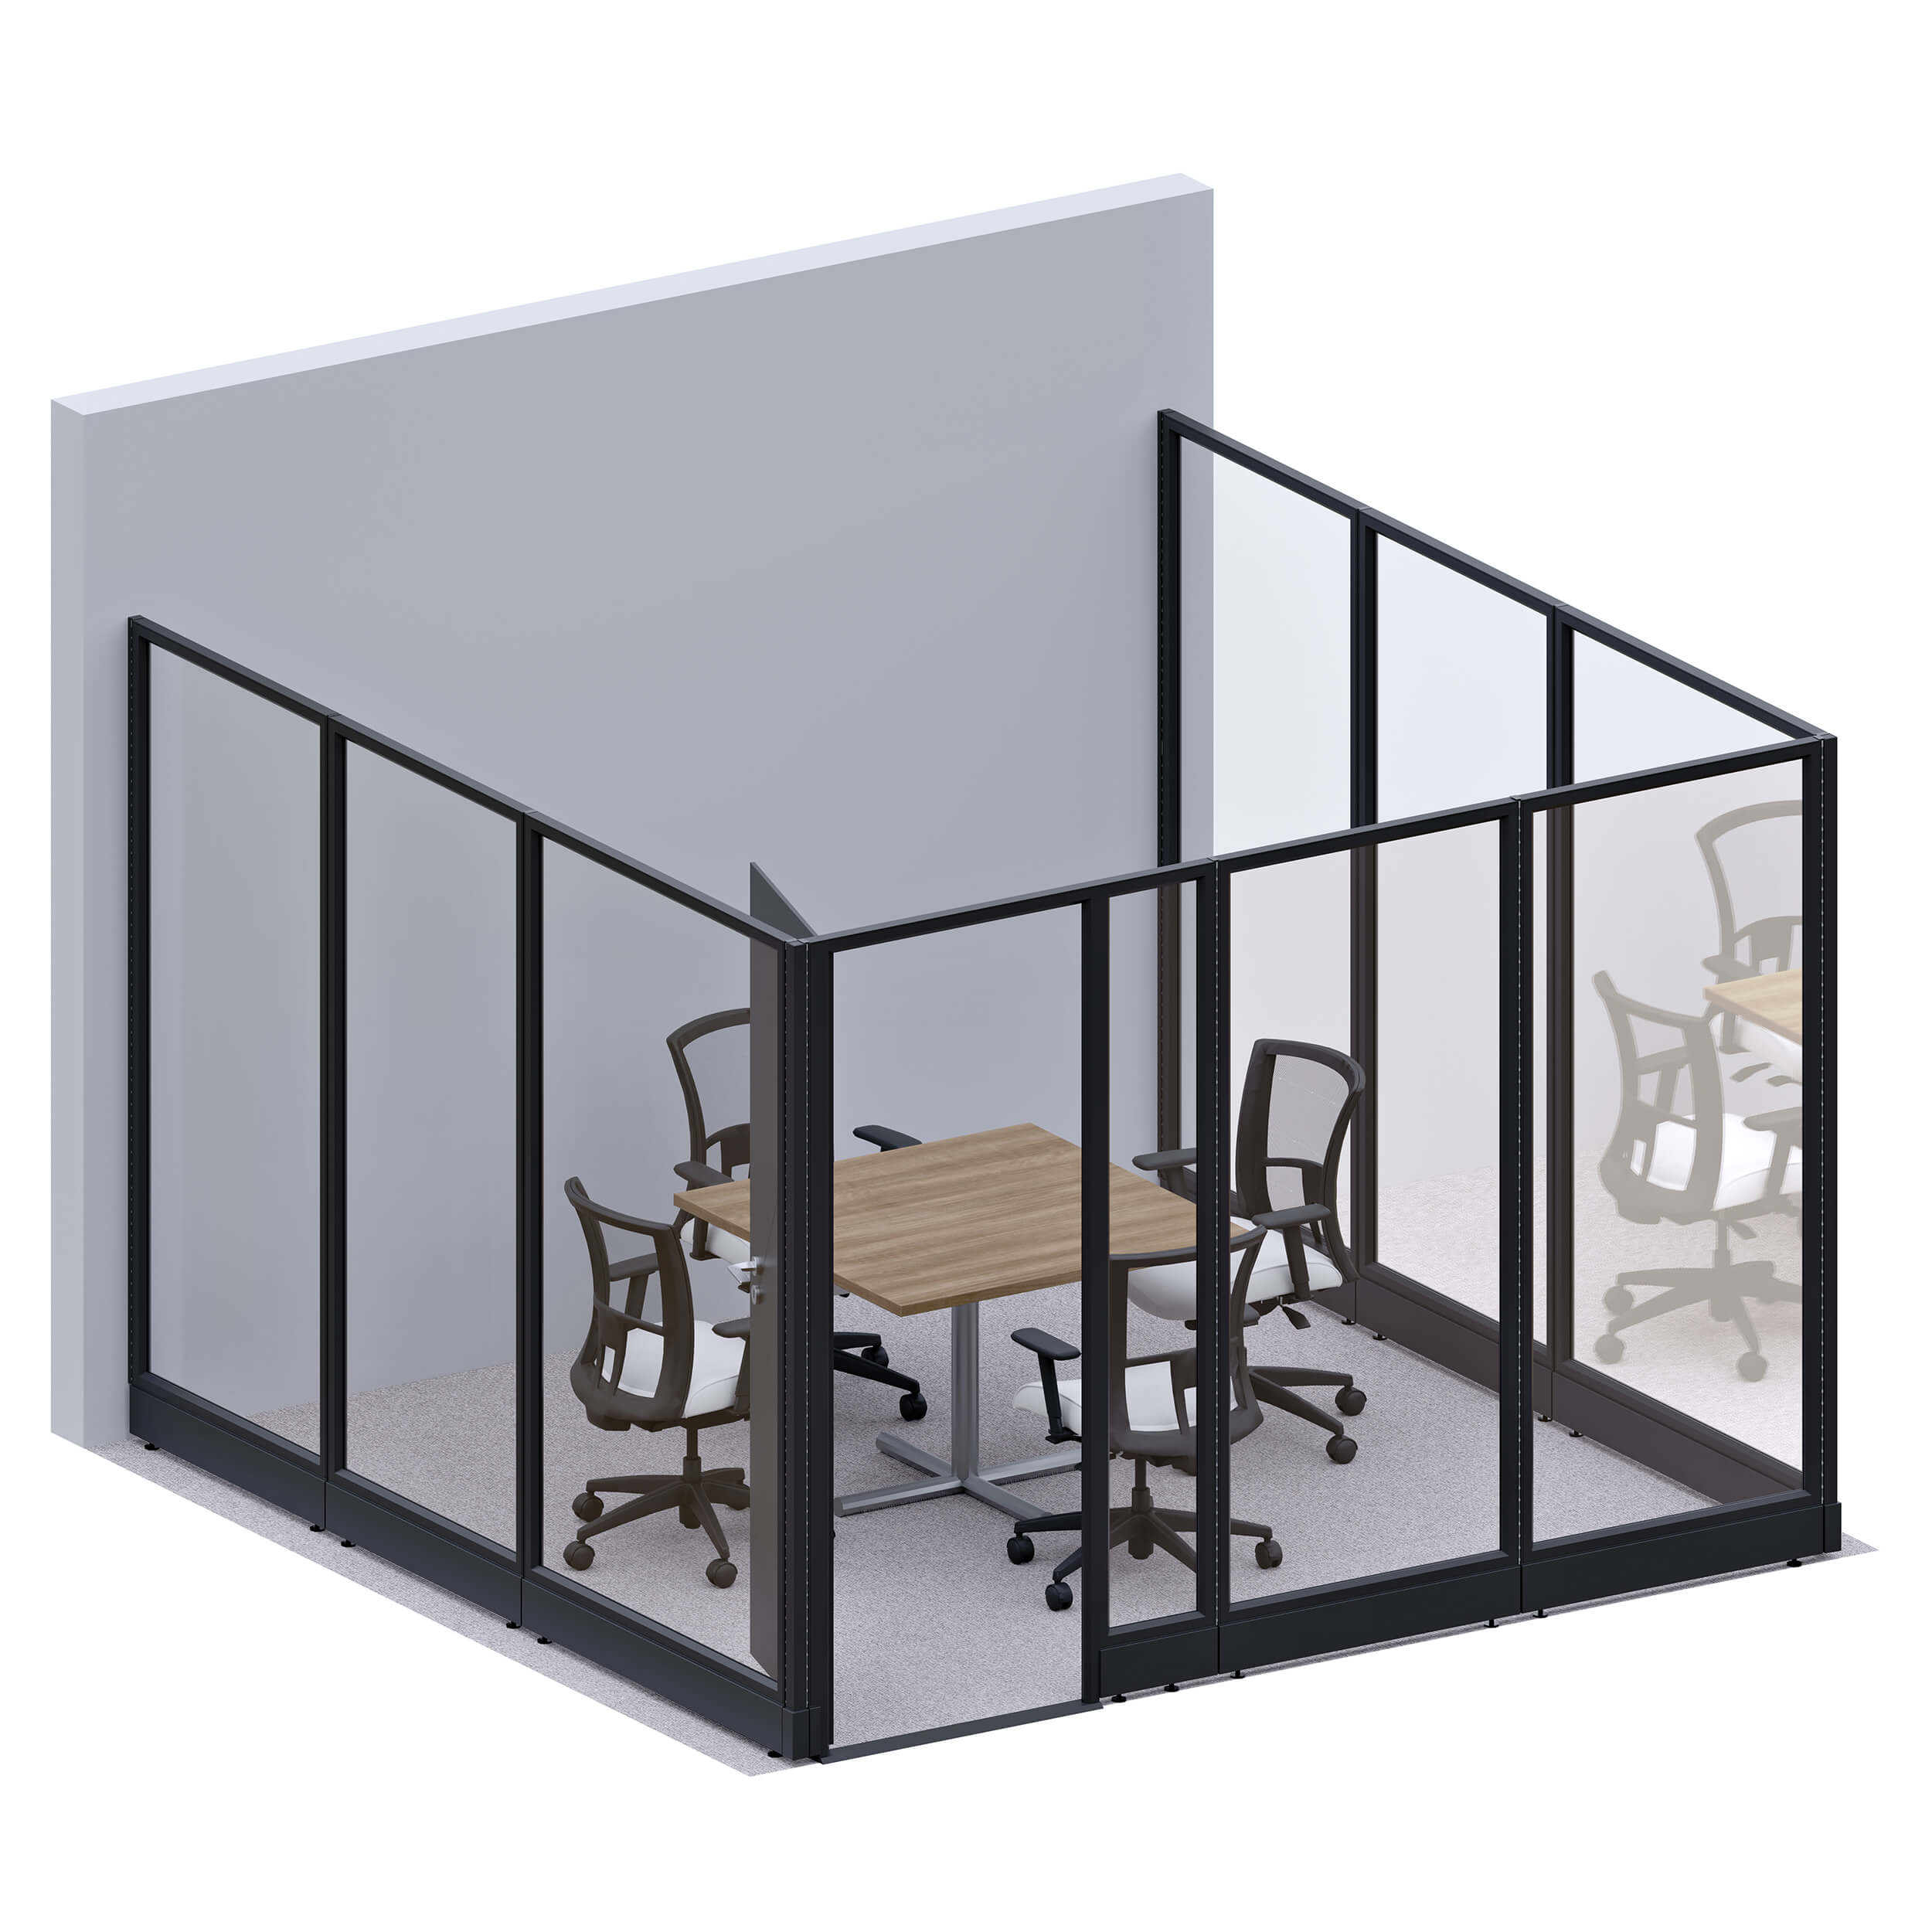 office-walls-glass-wall-conference-room-85h-u-shape.jpg